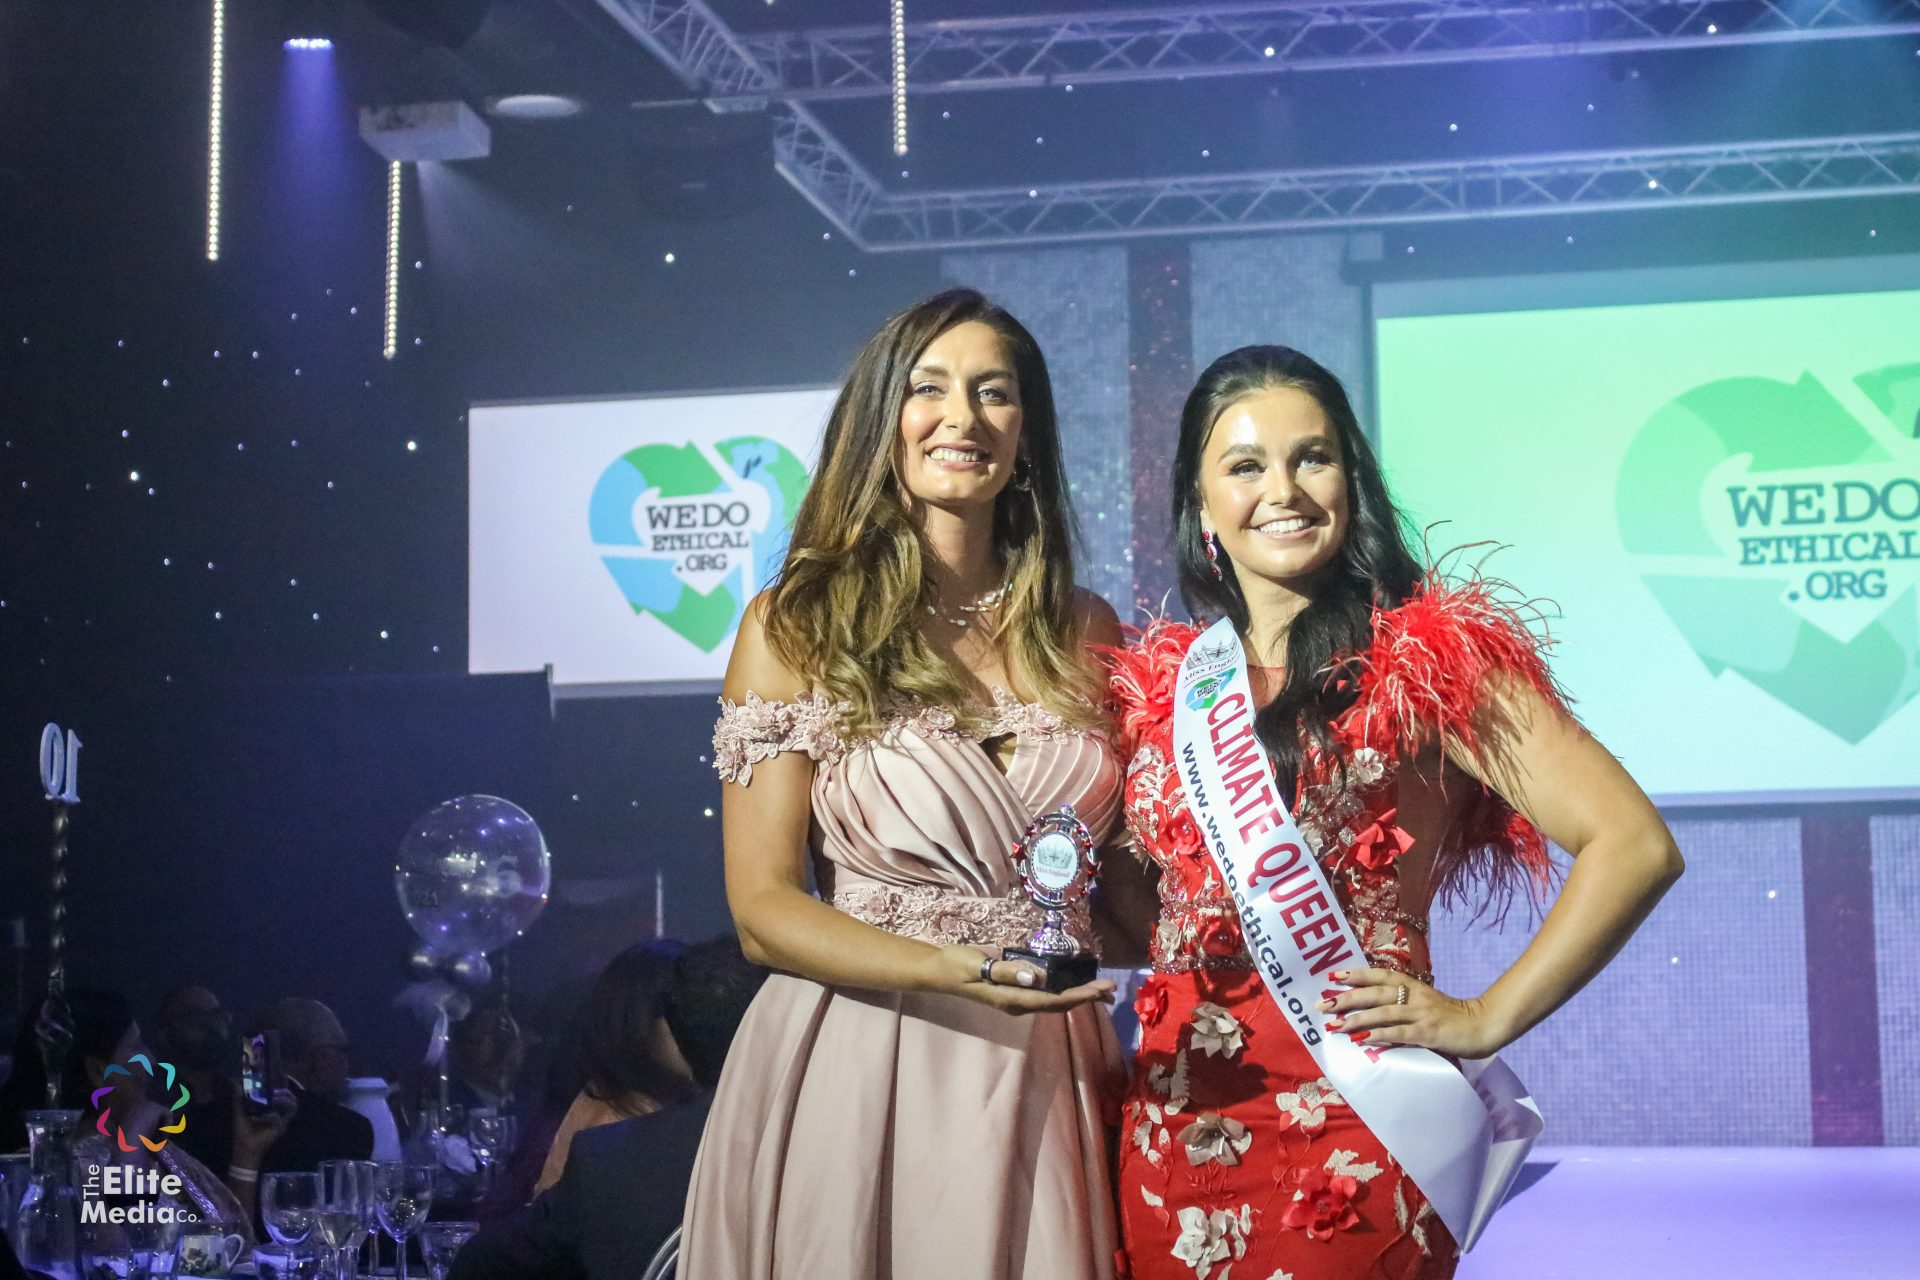 IN A BID TO TACKLE CLIMATE CRISIS – Miss England Teams up with WeDoEthical.org aiming to plant 70,000 trees for the 70th year of Miss World